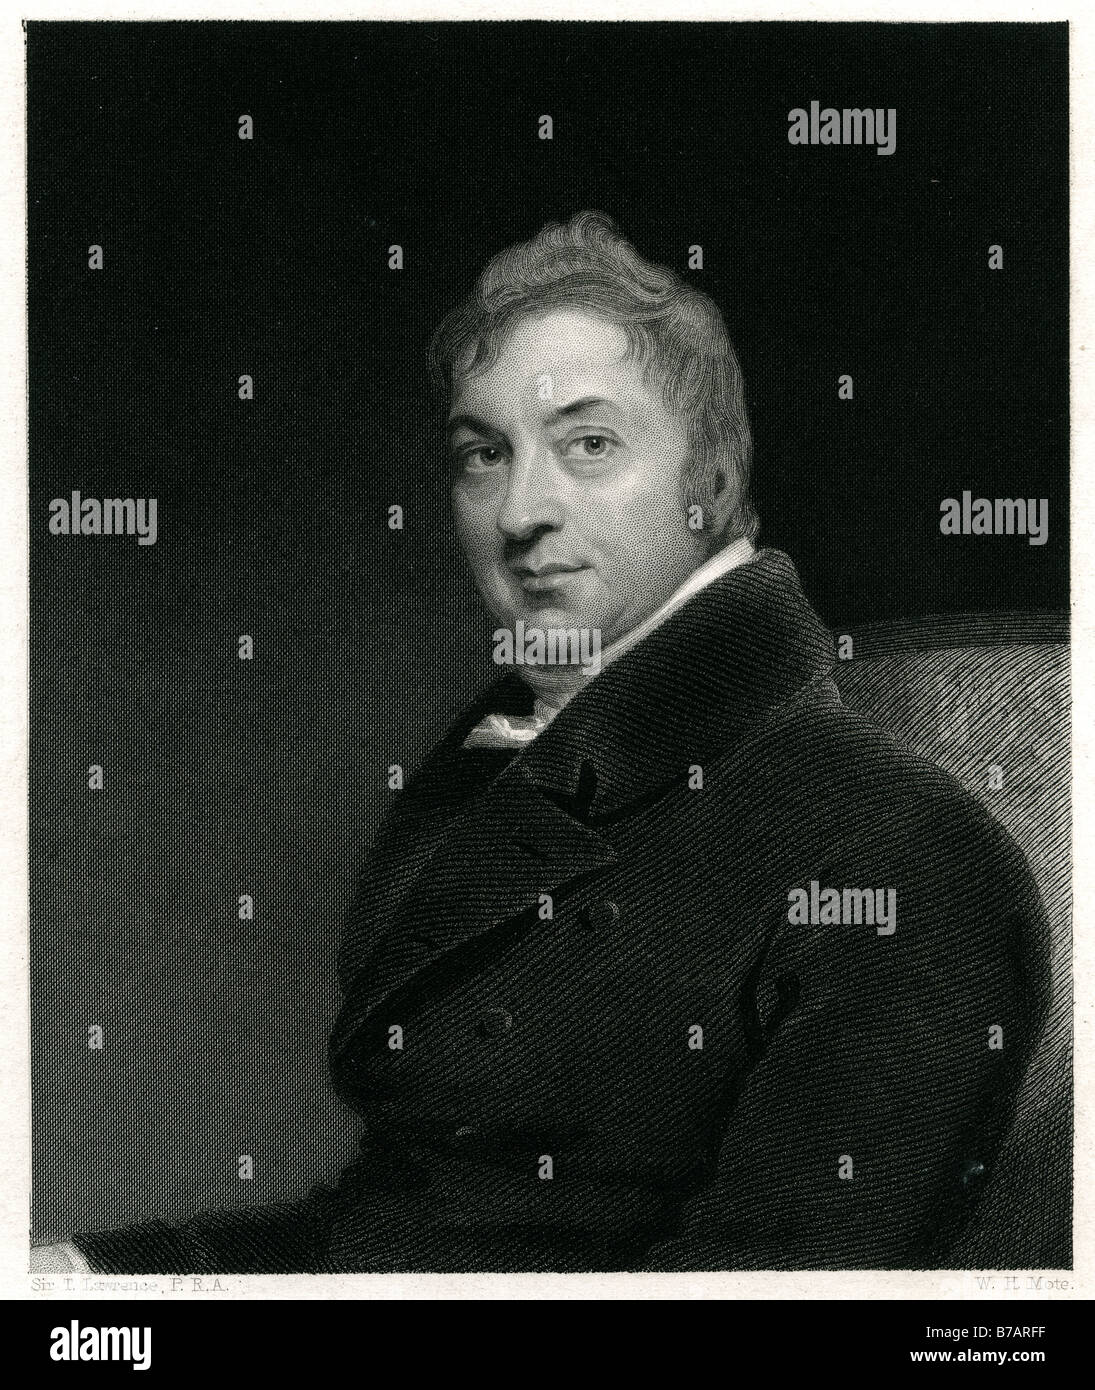 Edward B. Jenner, FRS, (18th May 1749 – 26 January 1823) was an English scientist who studied his natural surroundings - Stock Image